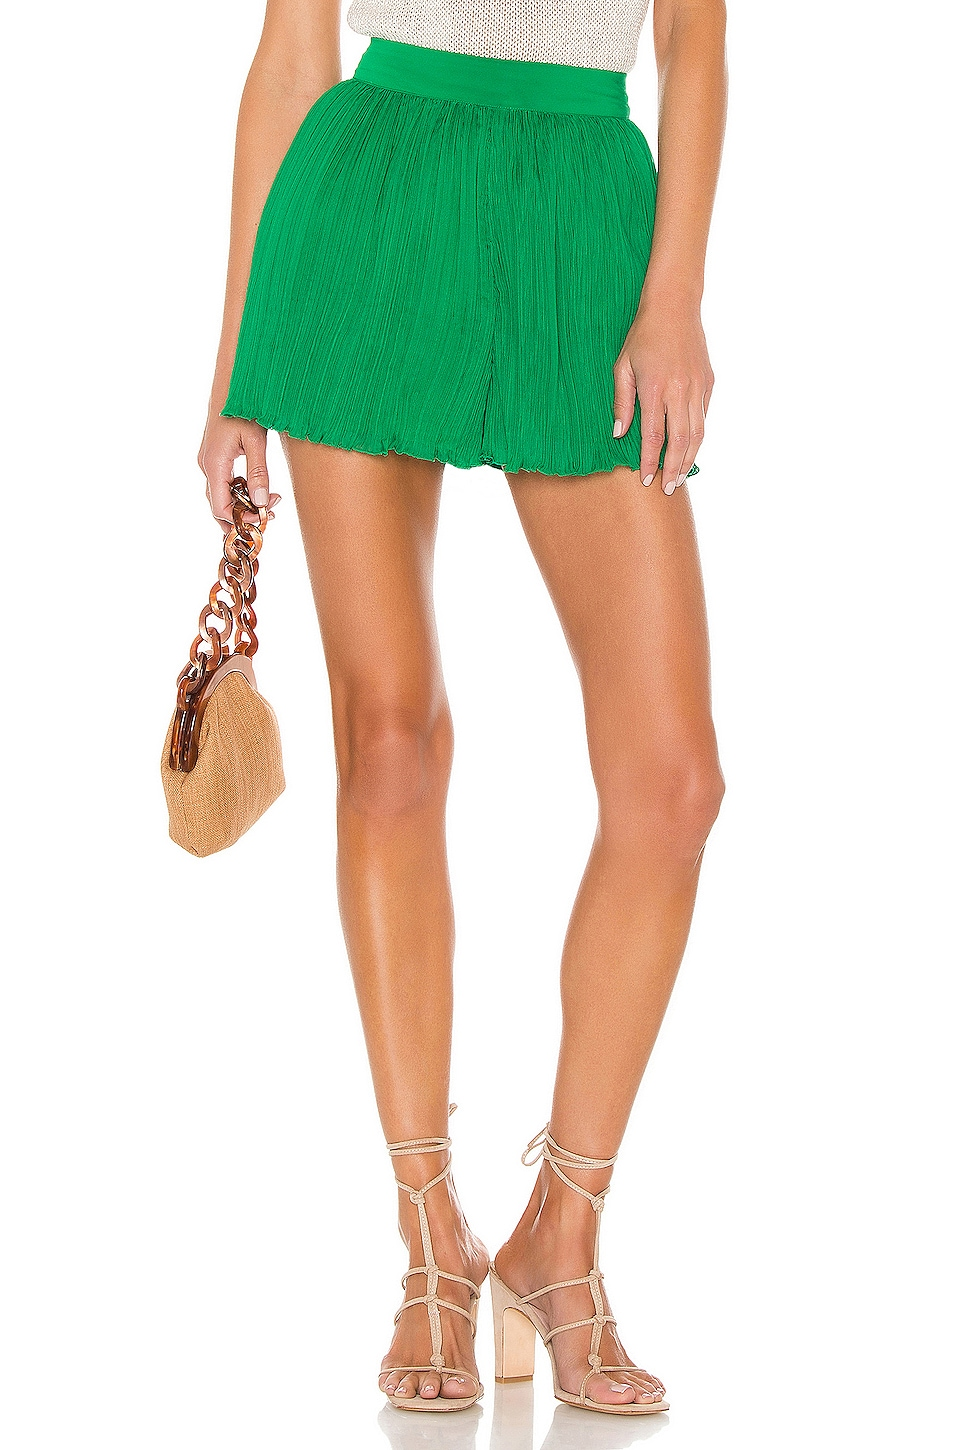 House of Harlow 1960 X REVOLVE Esther Short en Kelly Green